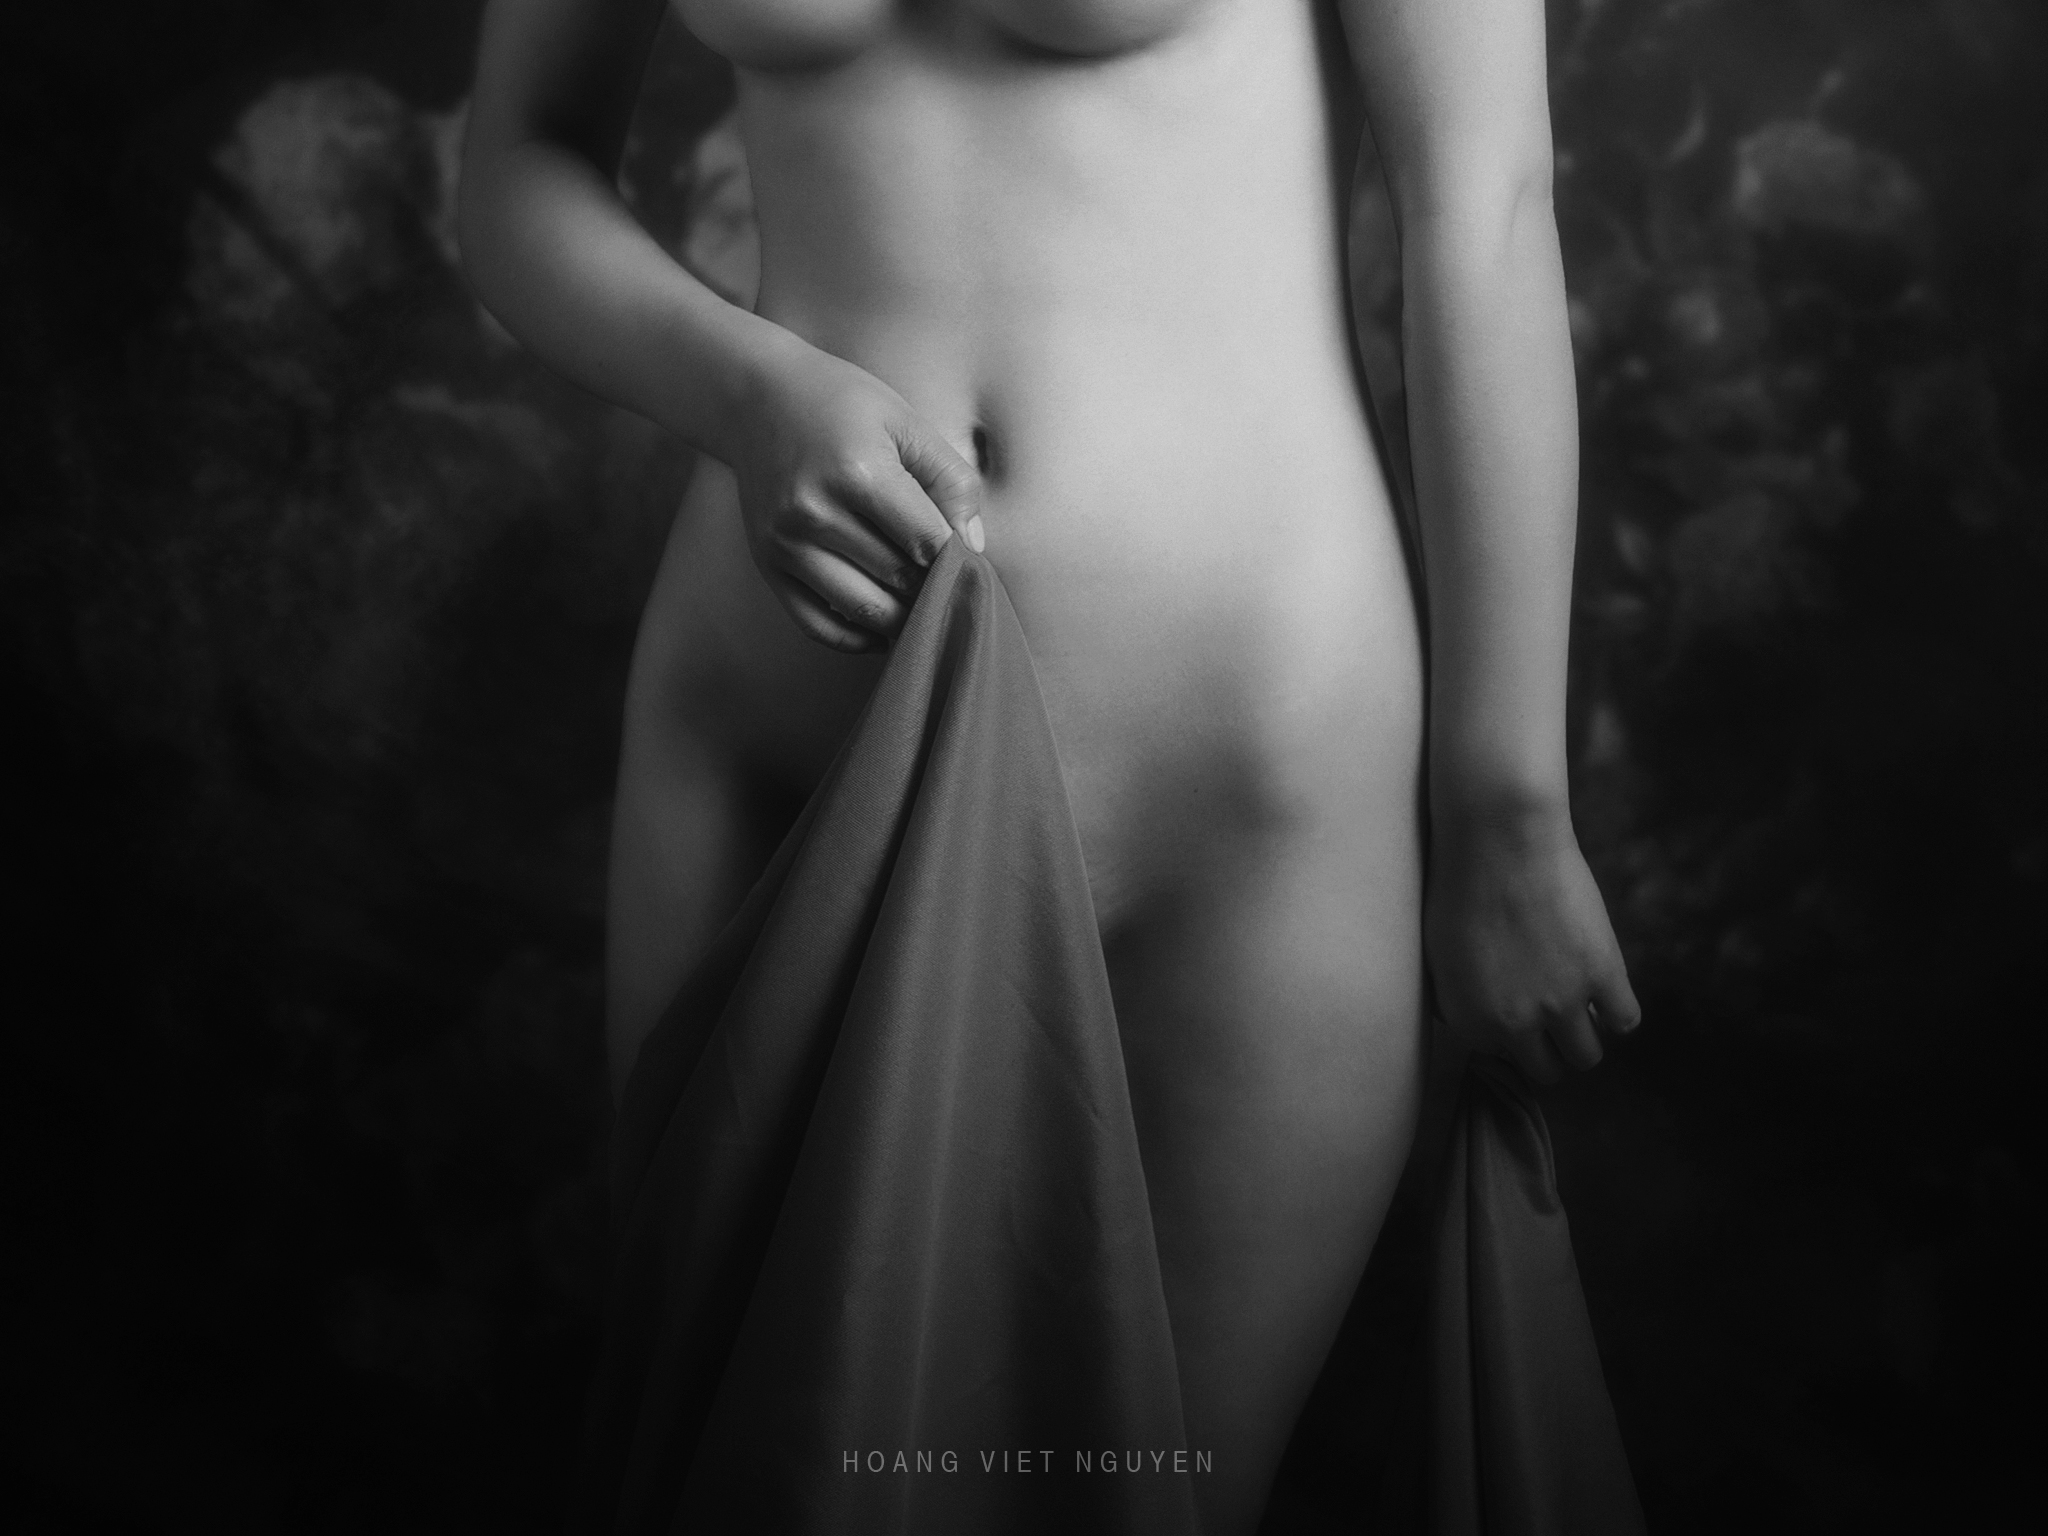 portrait, woman, female, vietnamese, asian, girl, studio,fine nude, nude, young, pure, bw, black and white, monochrome, Hoang Viet Nguyen